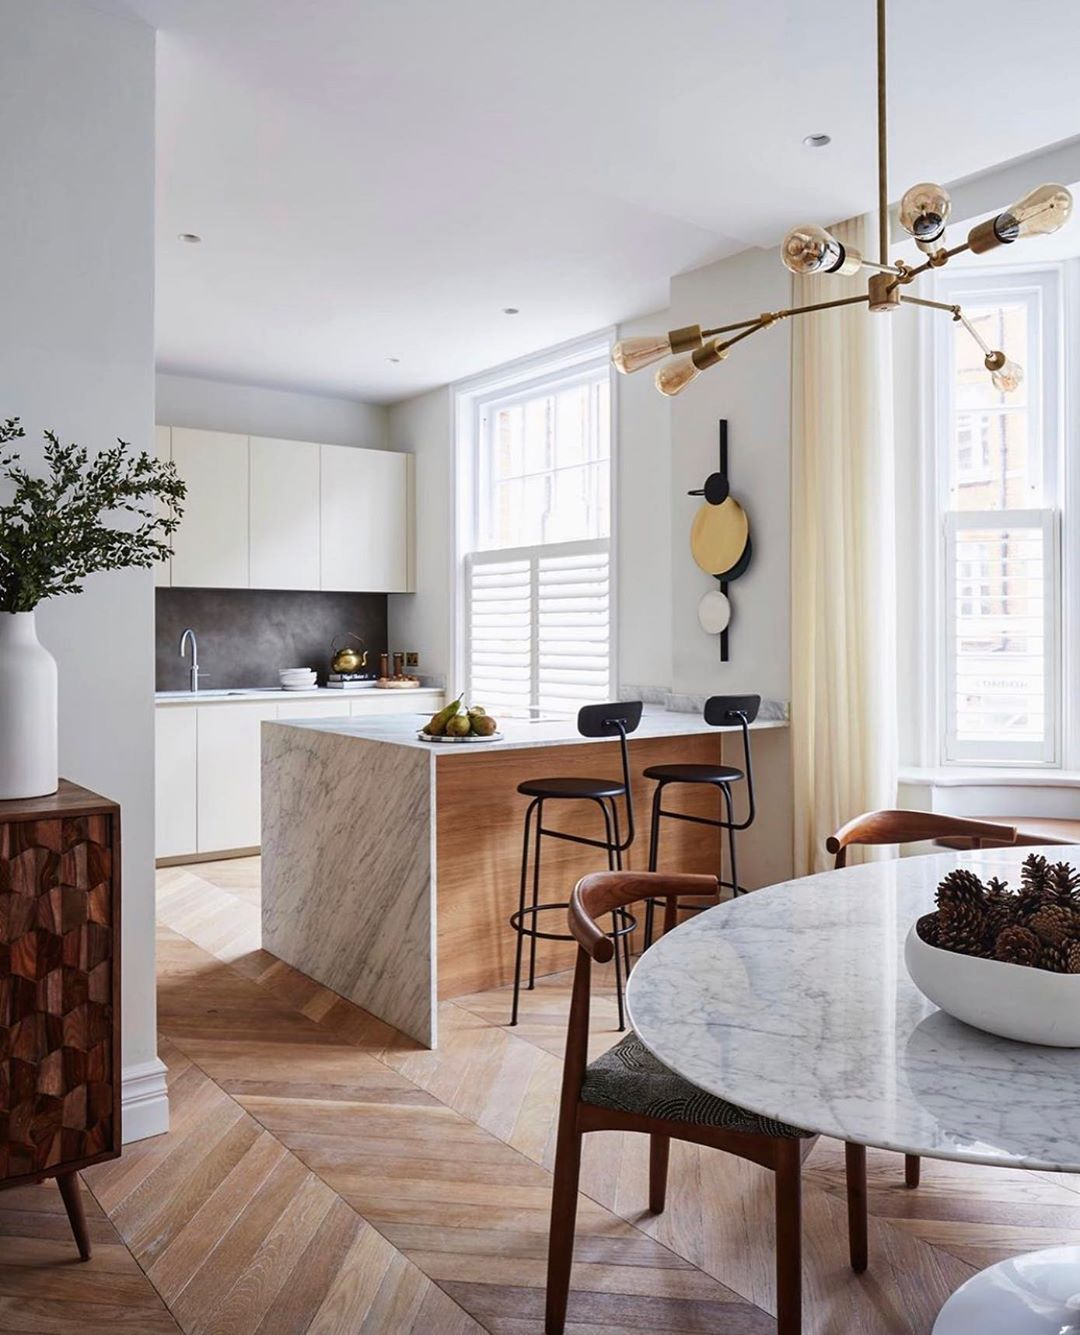 Beautiful Kitchen and dining space - The very definition of bright and airy #interiordesign # ...